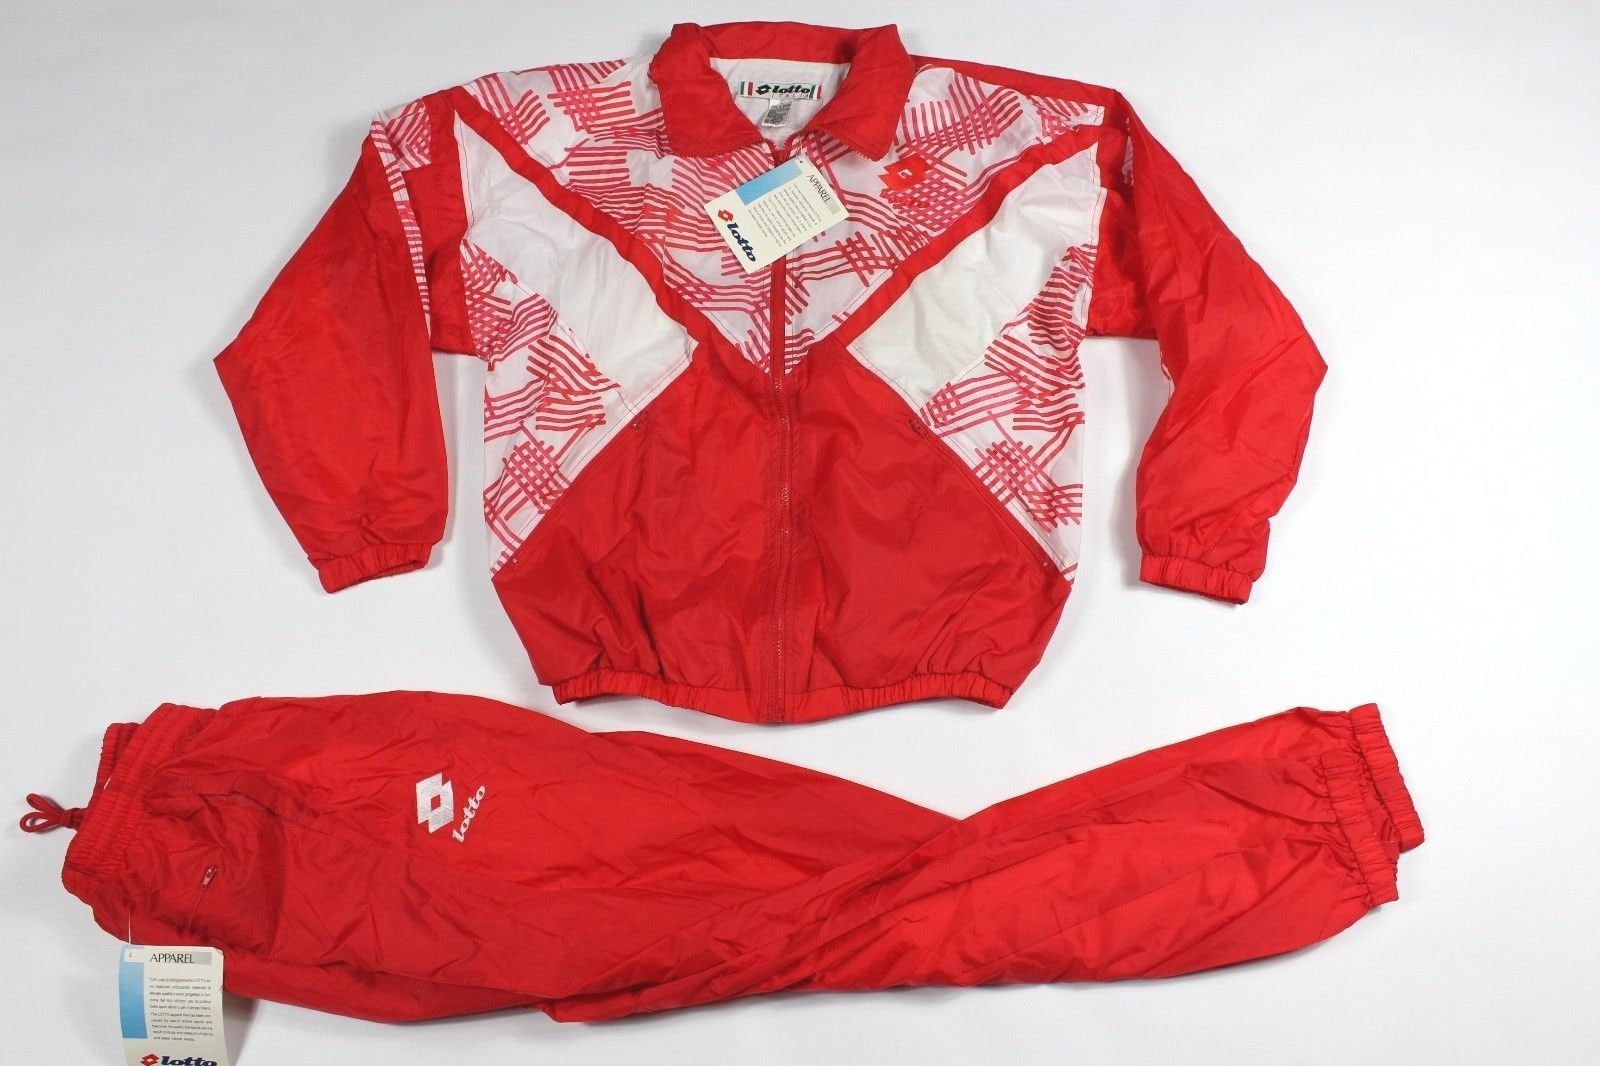 e4276fad4ba2c 80s Deadstock Lotto Italia Spell Out Lined Soccer Davanti Warm Up 2 Piece  Jacket Pants Mens Large Red White, Vintage 80s Lotto Soccer